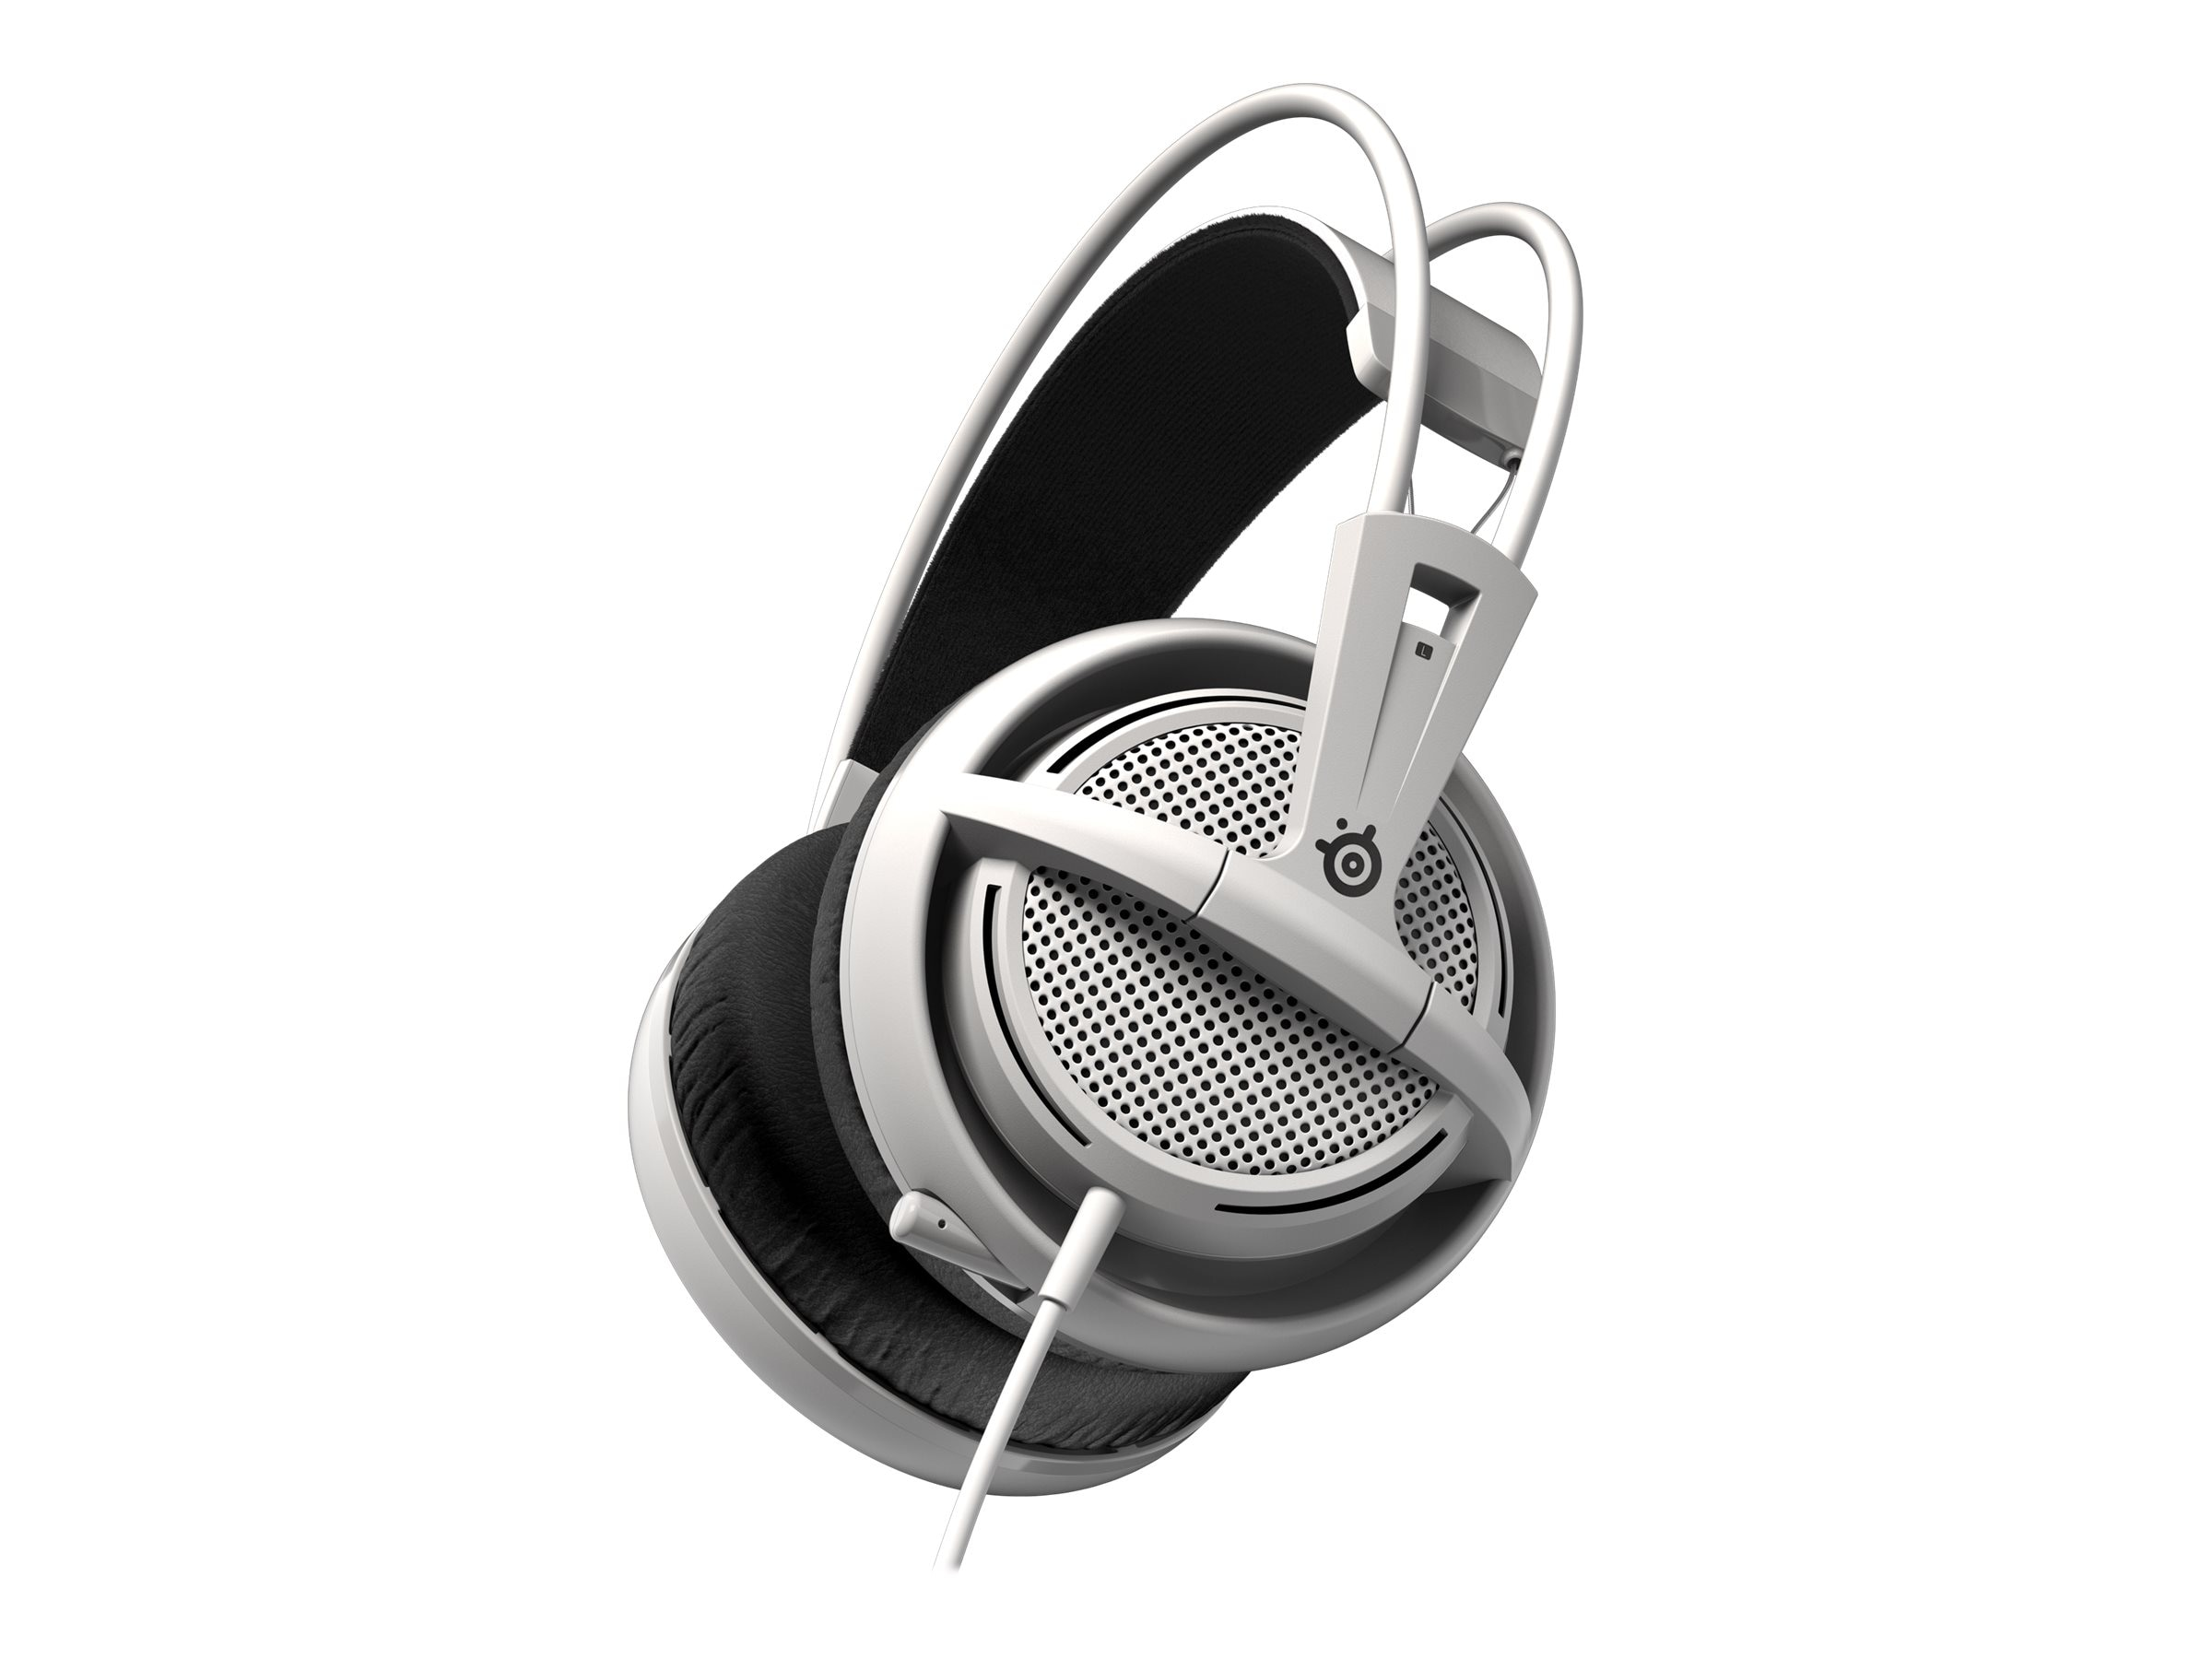 Steelseries Siberia 200 Headset - White